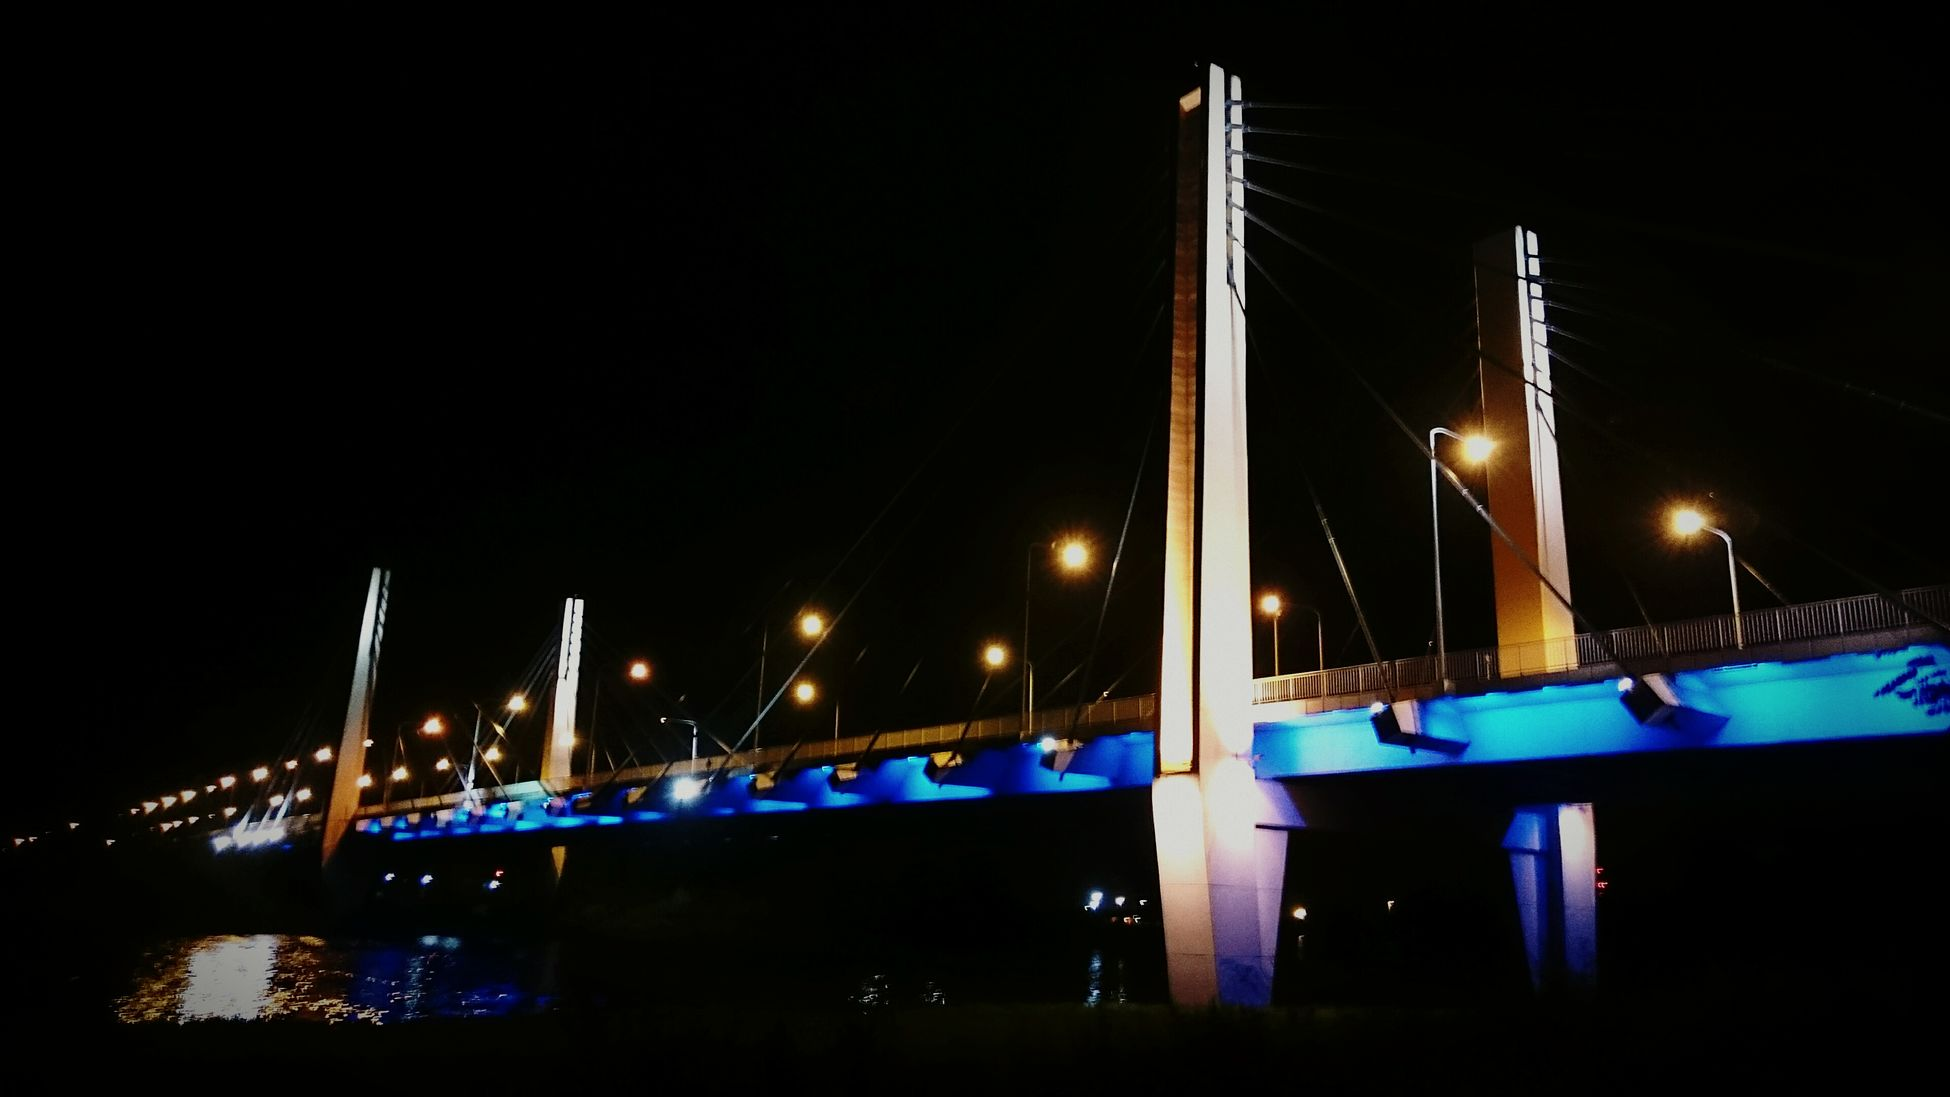 Most Milenijny we Wroclawiu Illuminated Night Bridge - Man Made Structure Transportation Connection Water Dark Bridge Suspension Bridge Blue Sky Engineering City Architecture